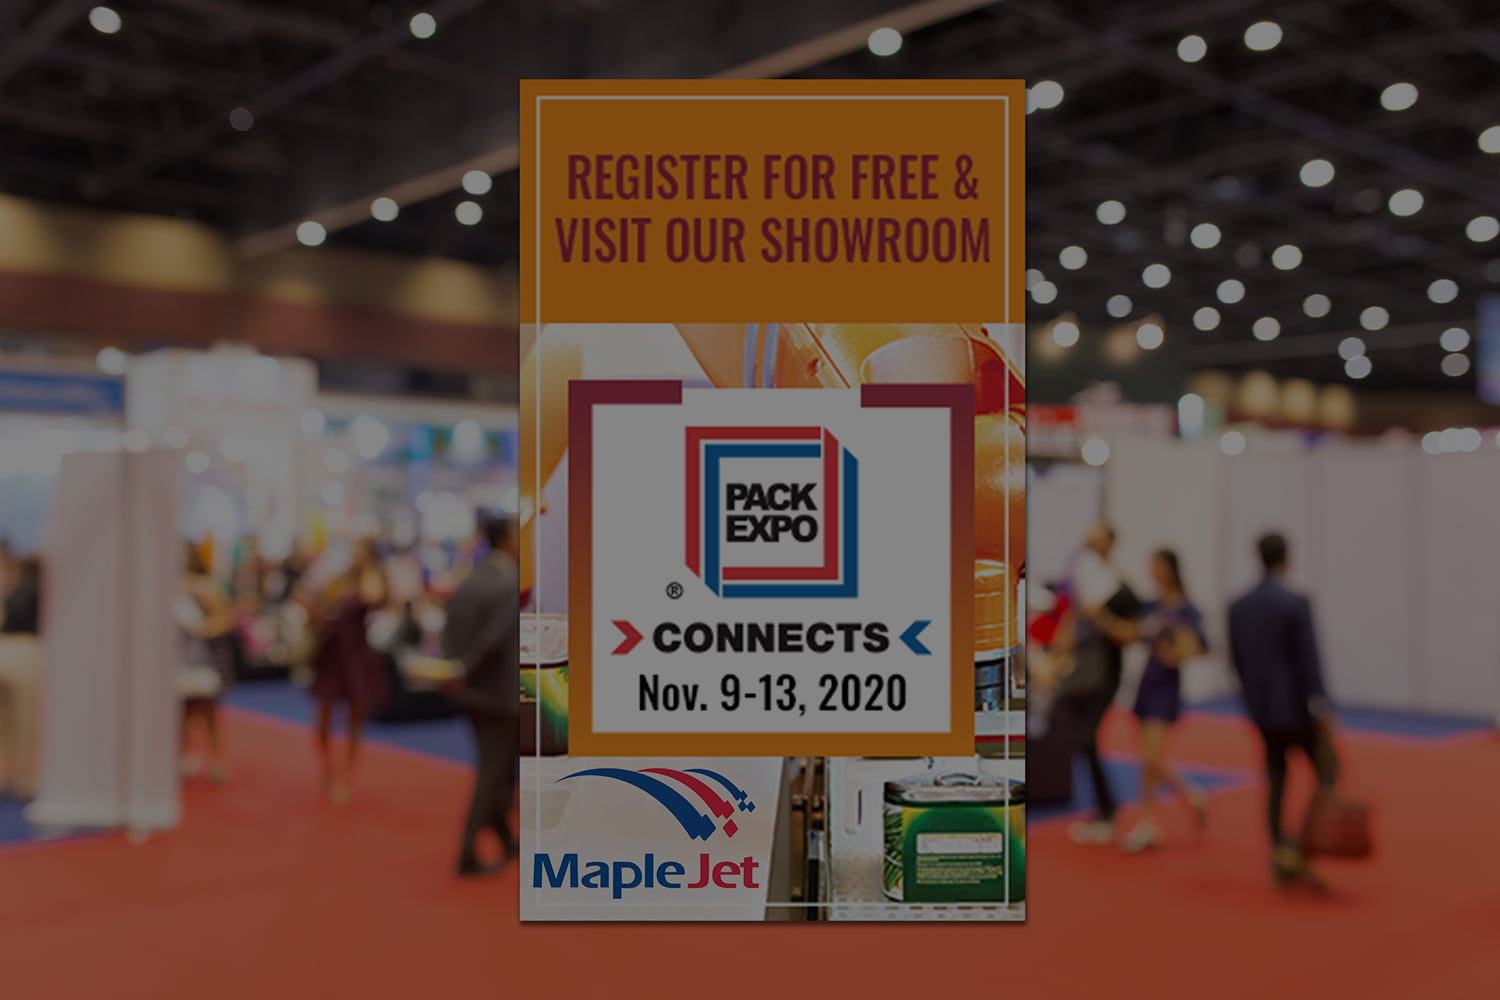 MapleJet is exhibiting at the virtual Pack Expo Connects 2020 trade show